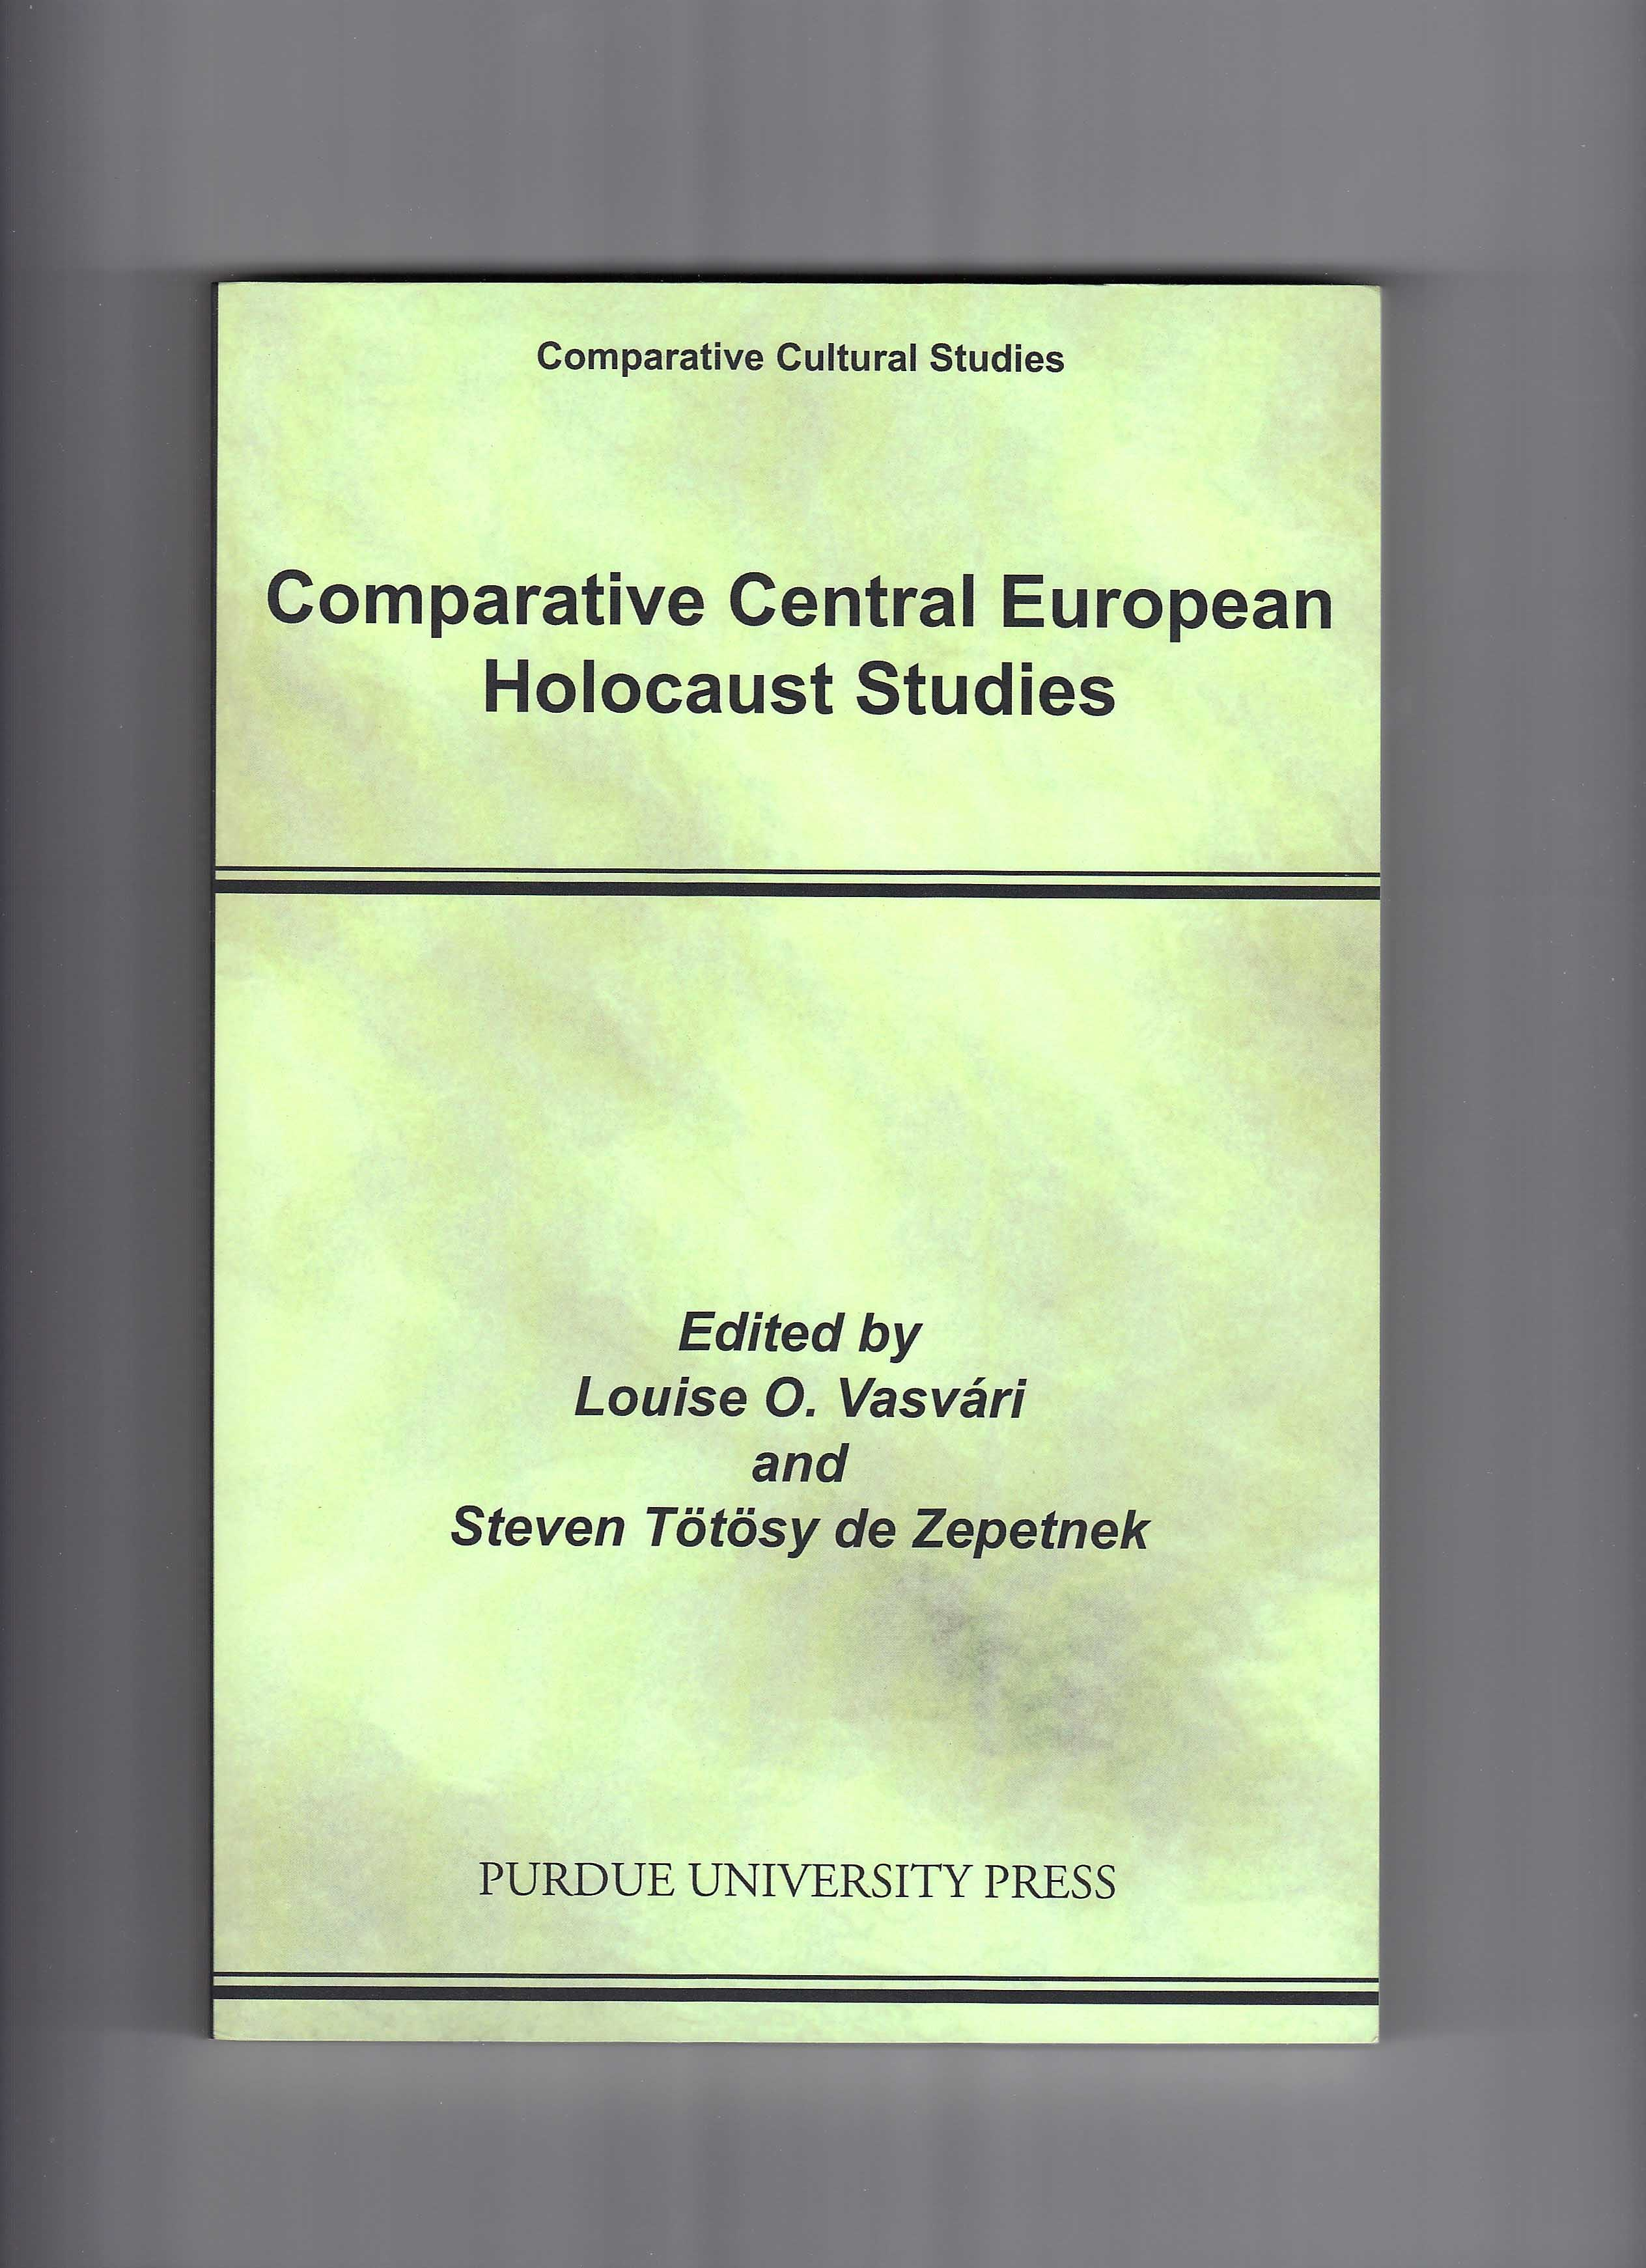 Comparative Central European Holocaust Studies. Ed. Louise O. Vasv�ri and Steven T�t�sy de Zepetnek. West Lafayette: Purdue University Press, 2009.